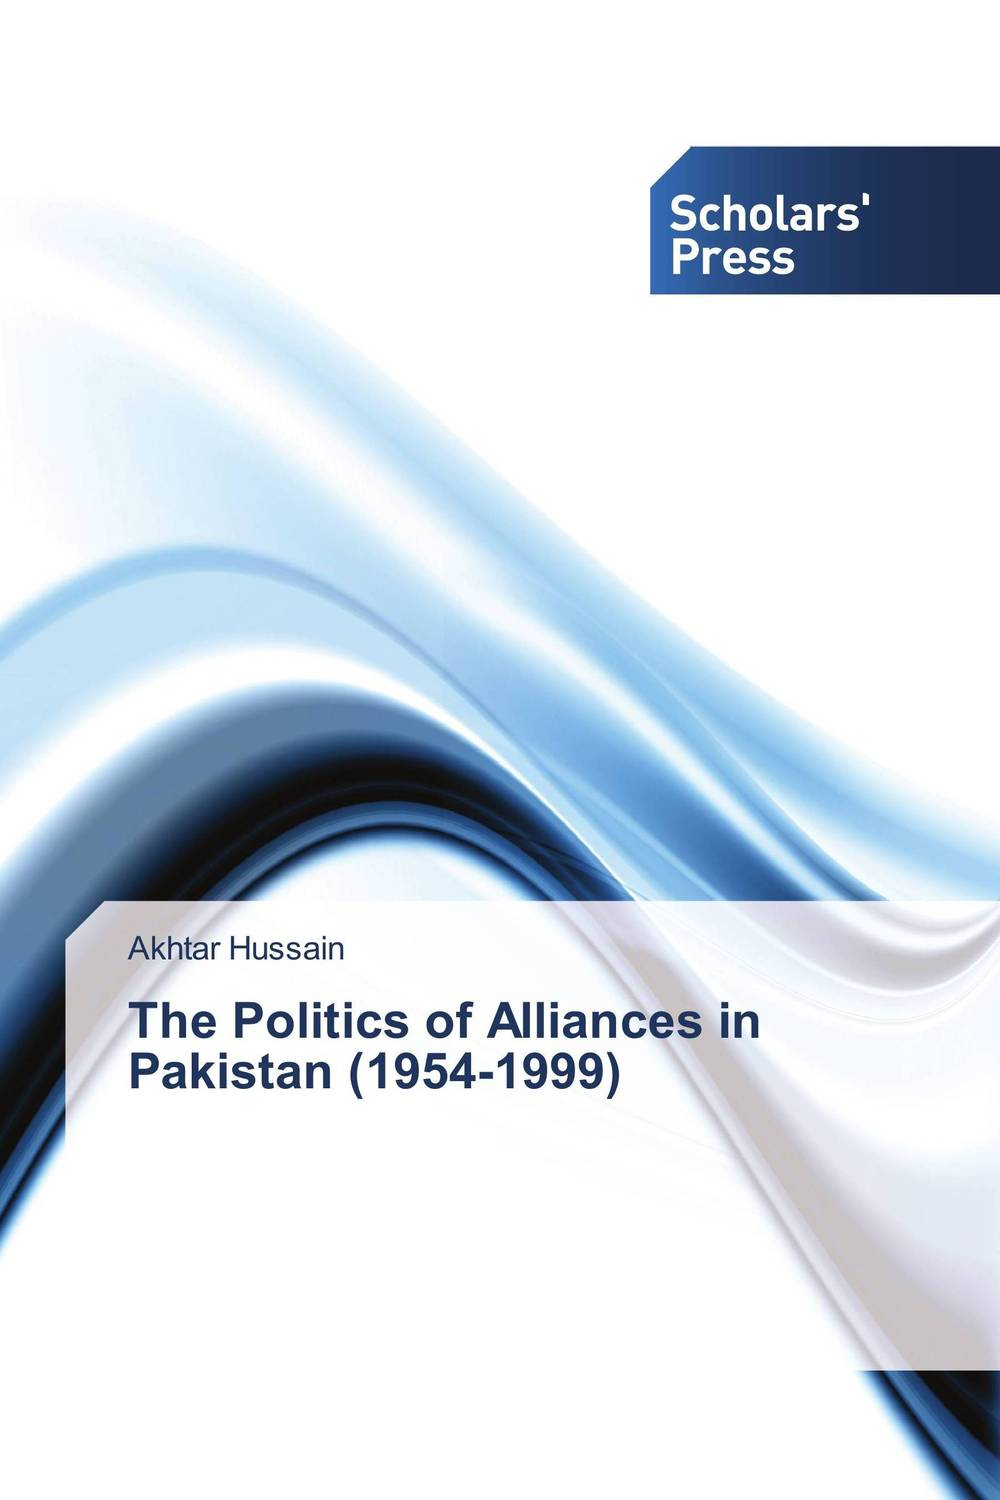 The Politics of Alliances in Pakistan (1954-1999) strict democracy burning the bridges in politics